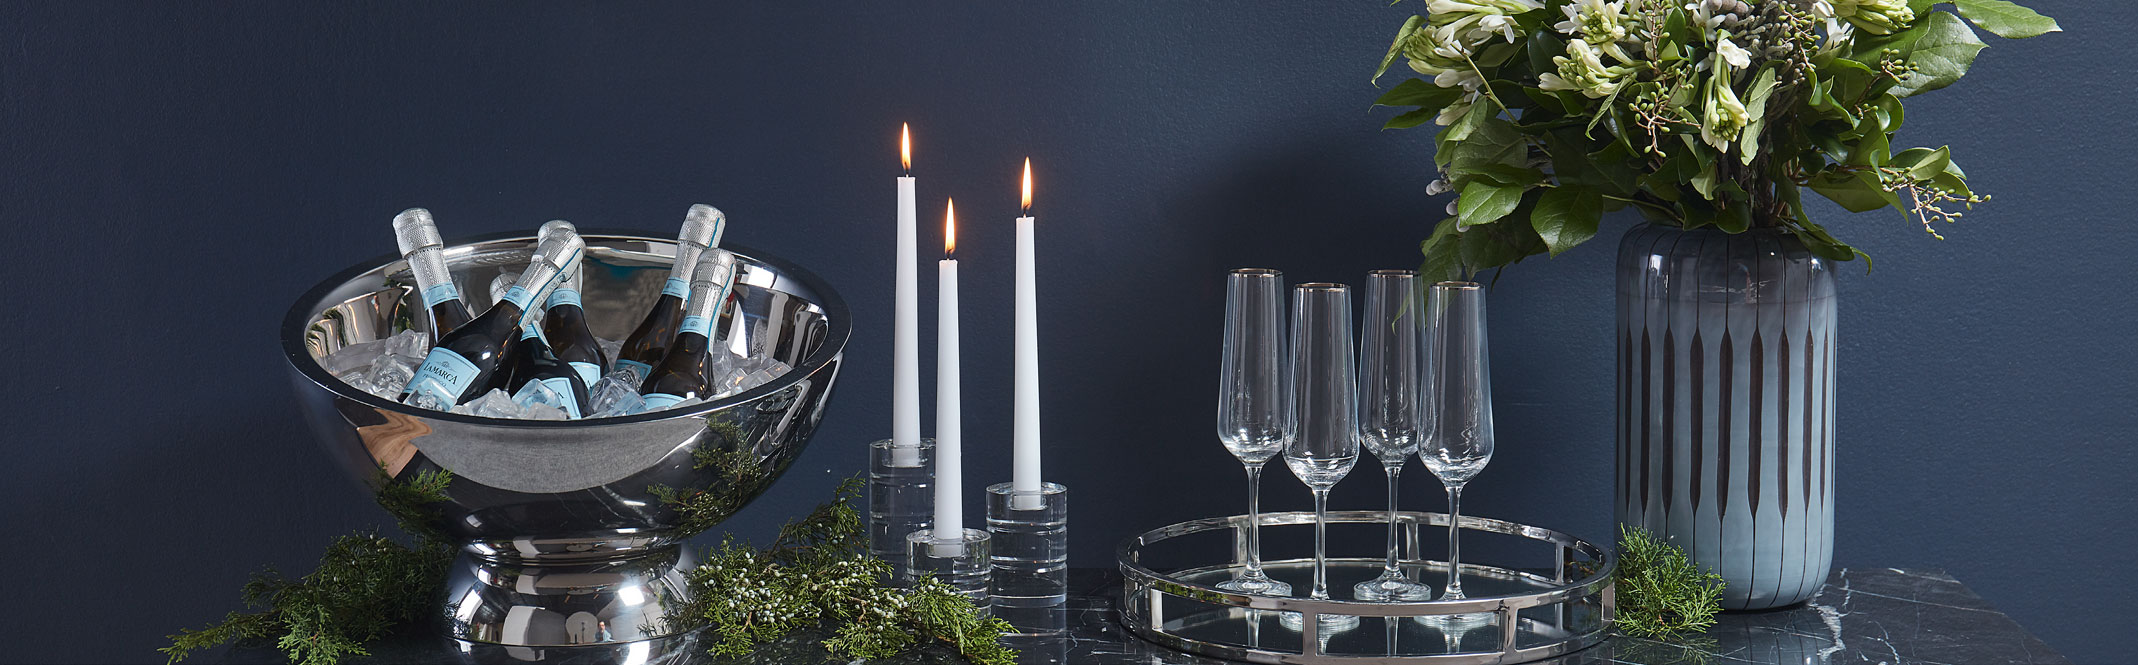 Holiday setting image featuring various barware and other giftable items